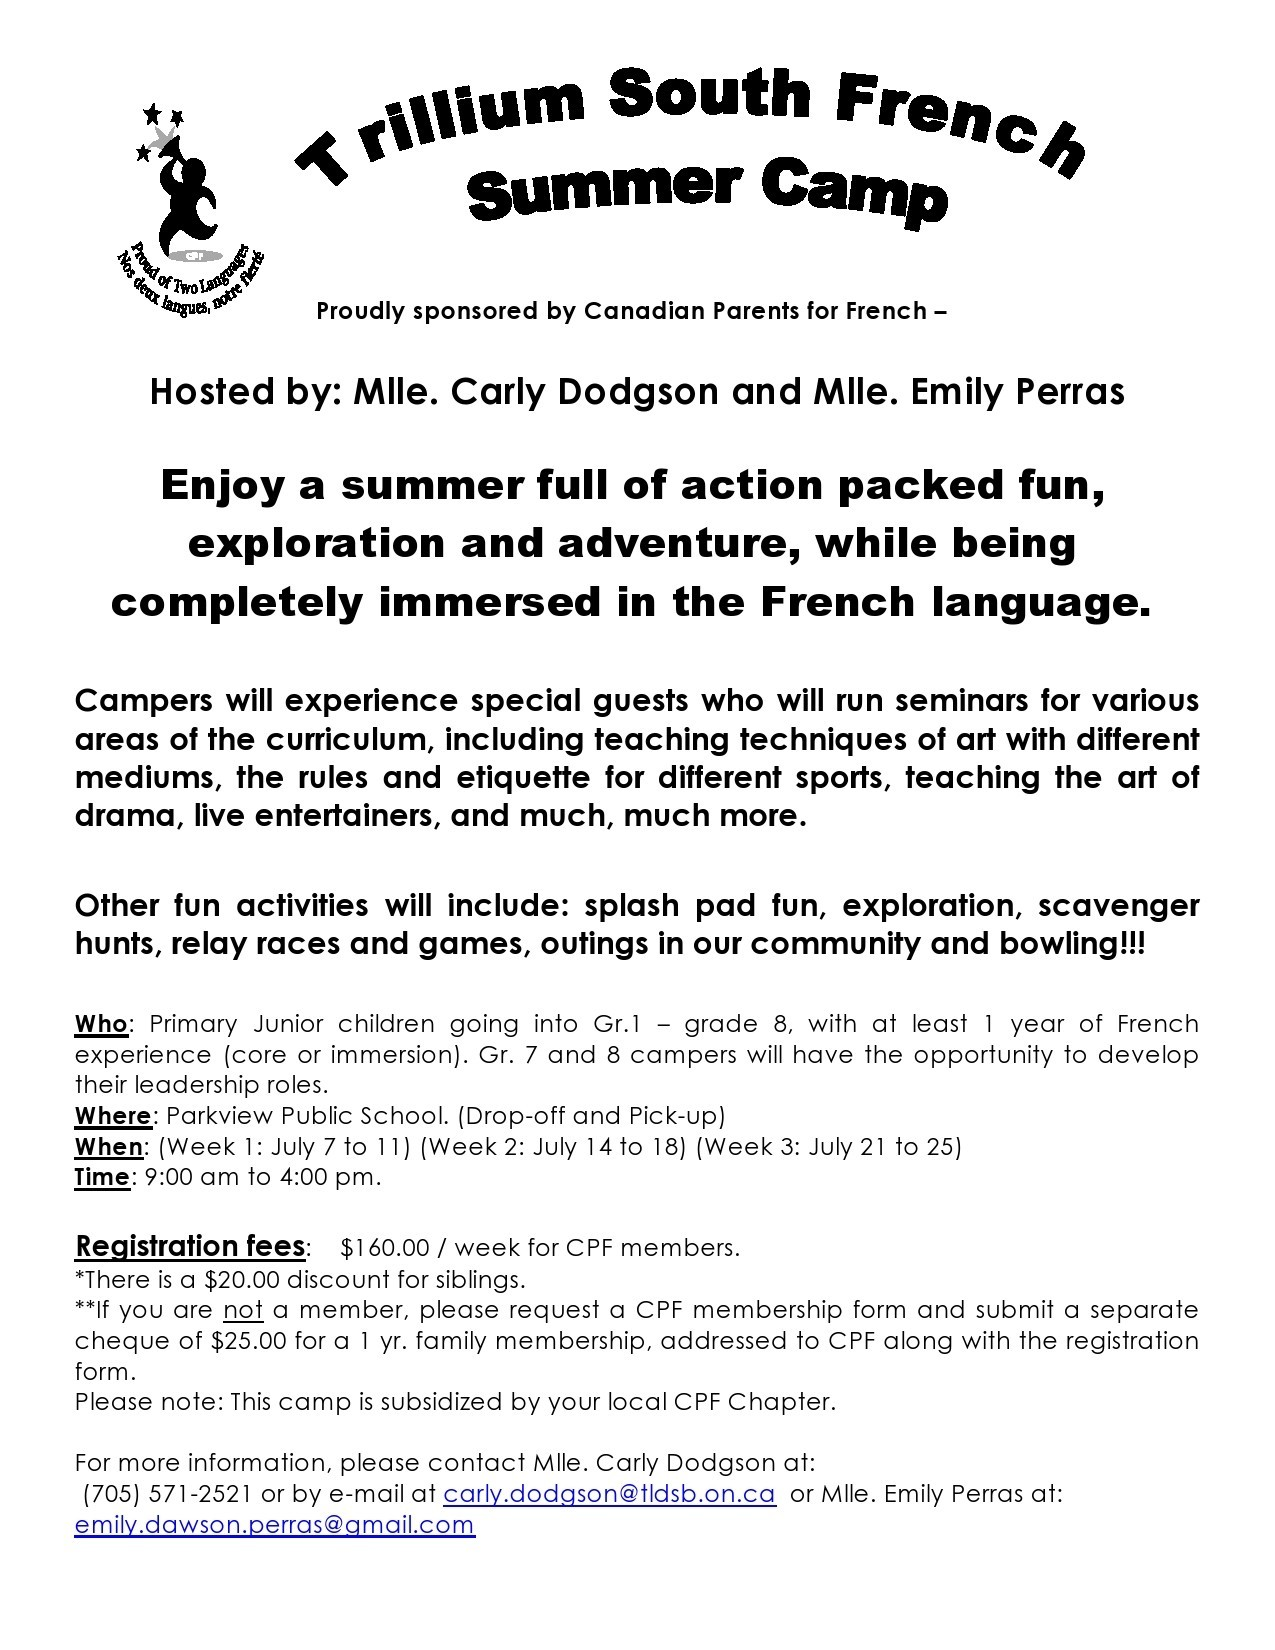 Free summer camp flyer 09